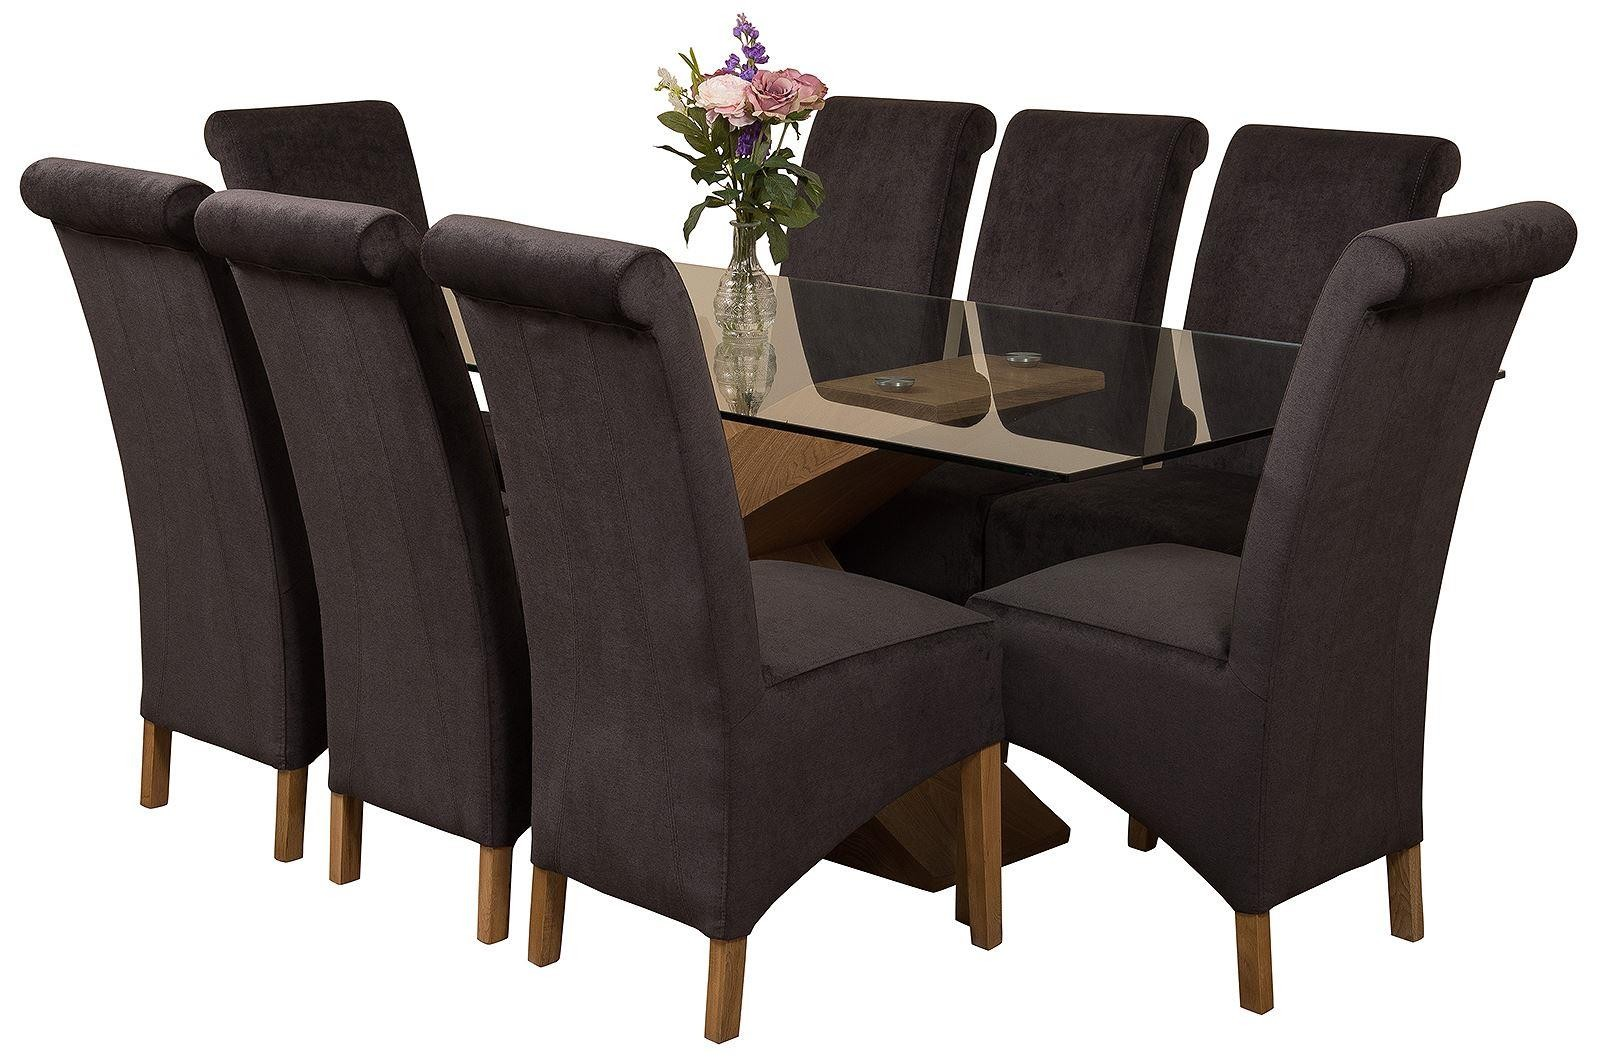 Valencia Oak 200cm Wood and Glass Dining Table with 8 Montana Dining Chairs [Black Fabric]